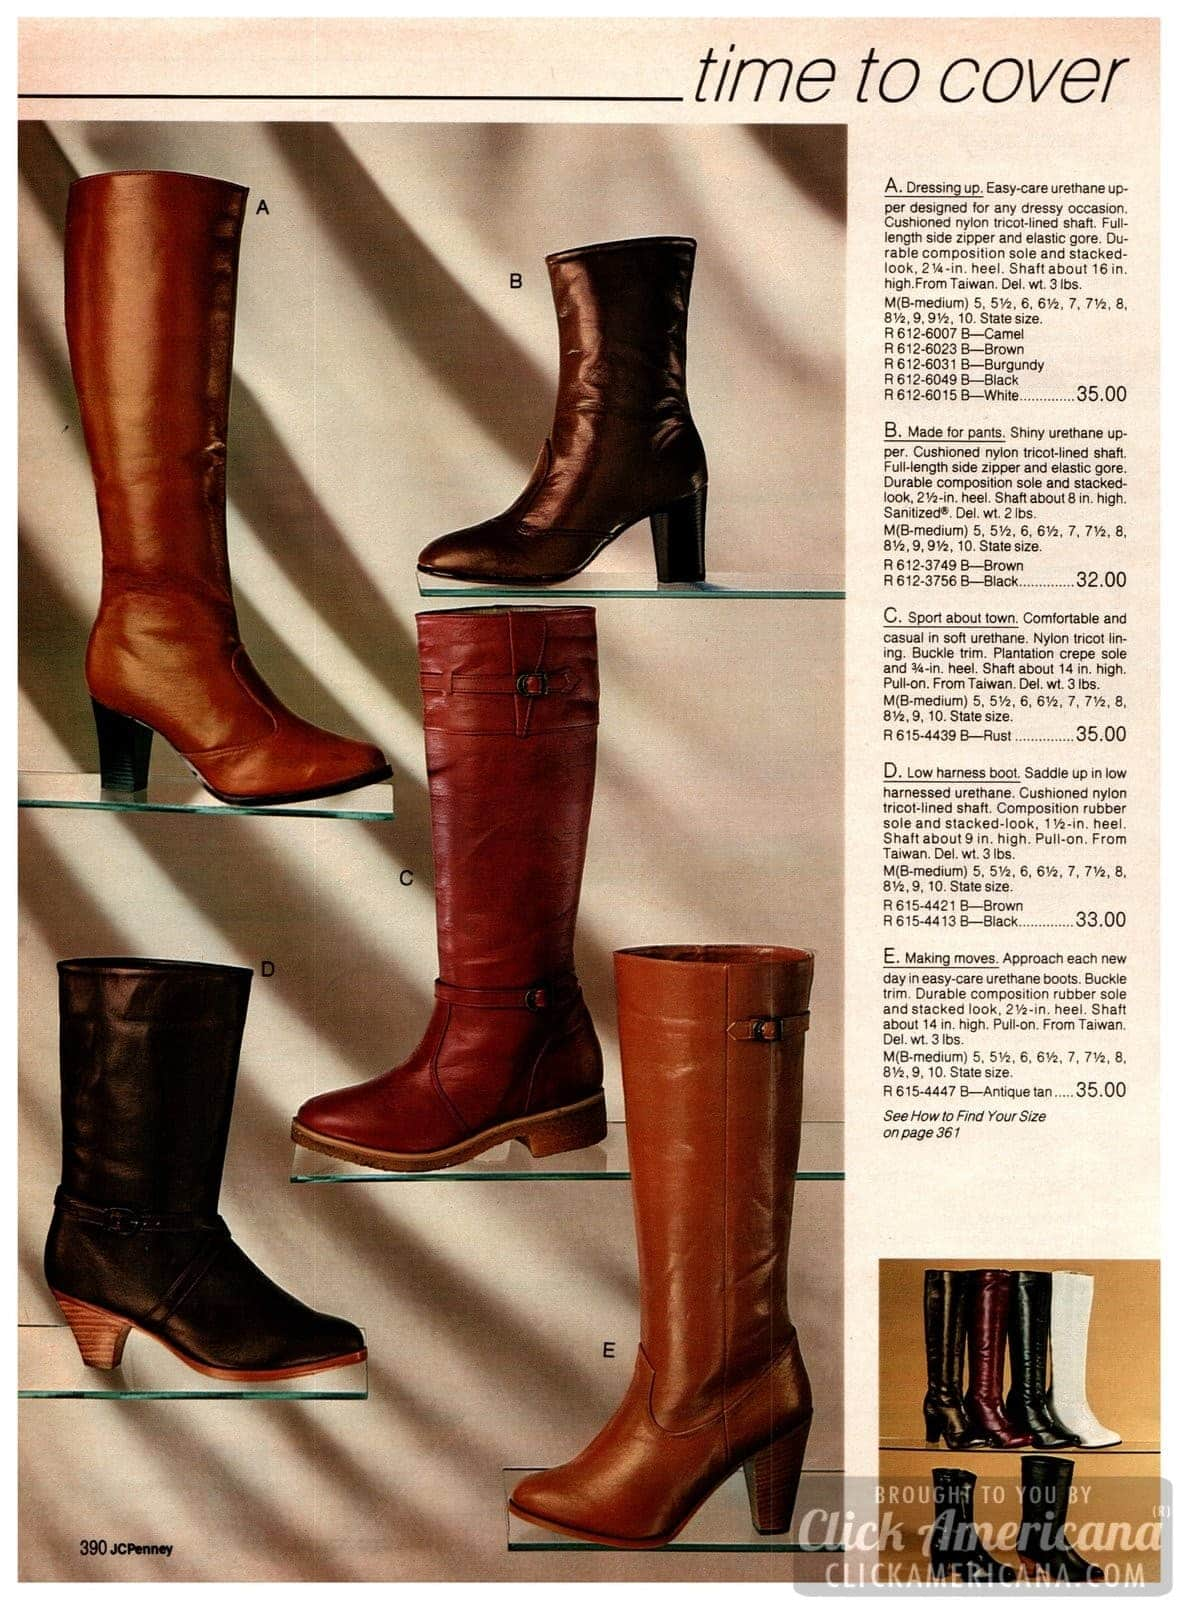 Brown boots for women - wedge, high and short heels in leather-look neutrals